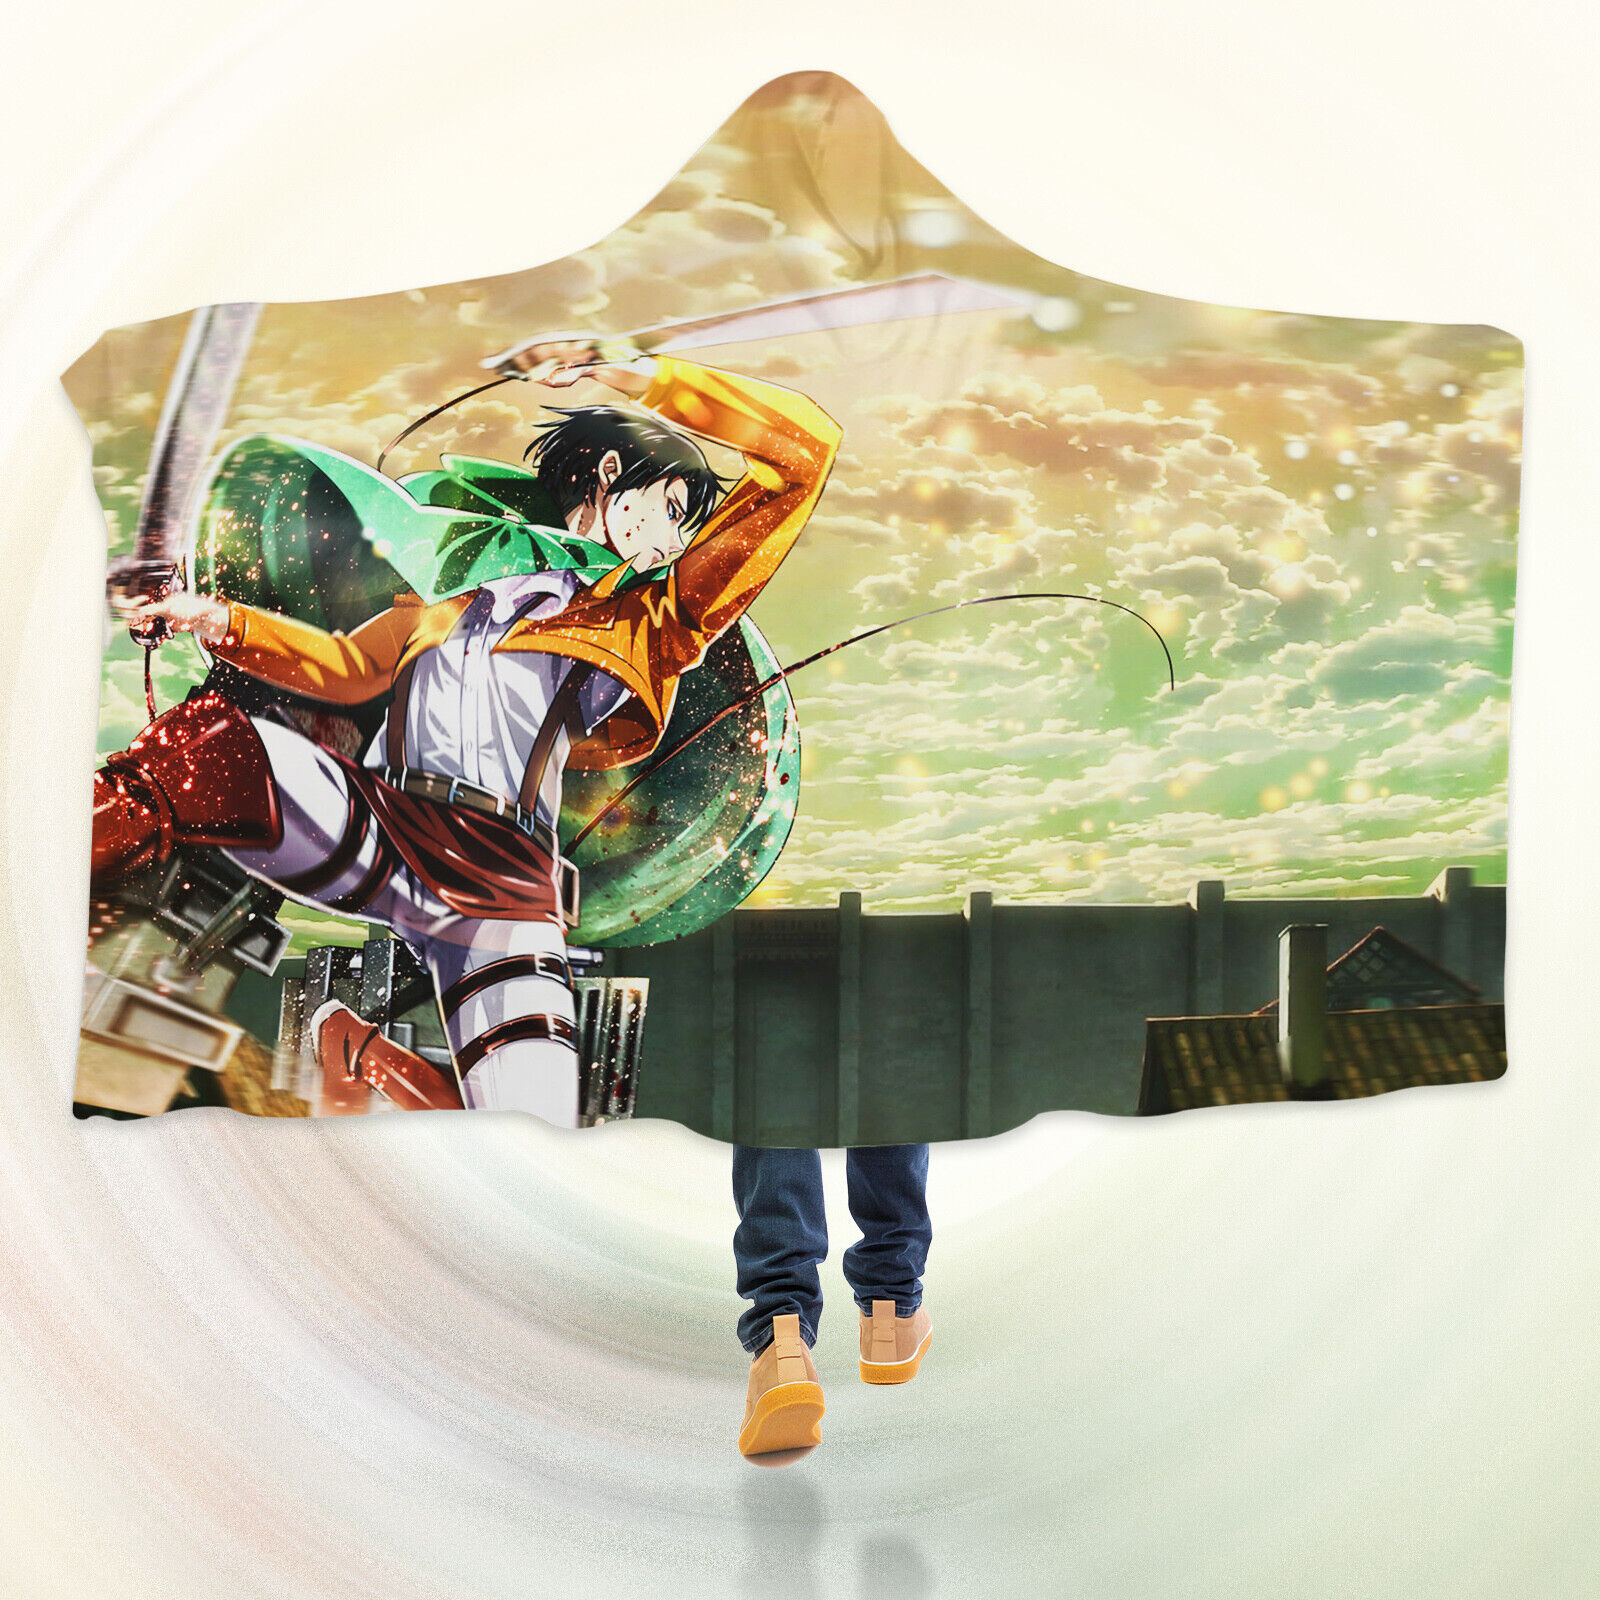 3D Attack On Titan Warrior I05 Hooded Blanket Cloak Japan Anime Cosplay Game An